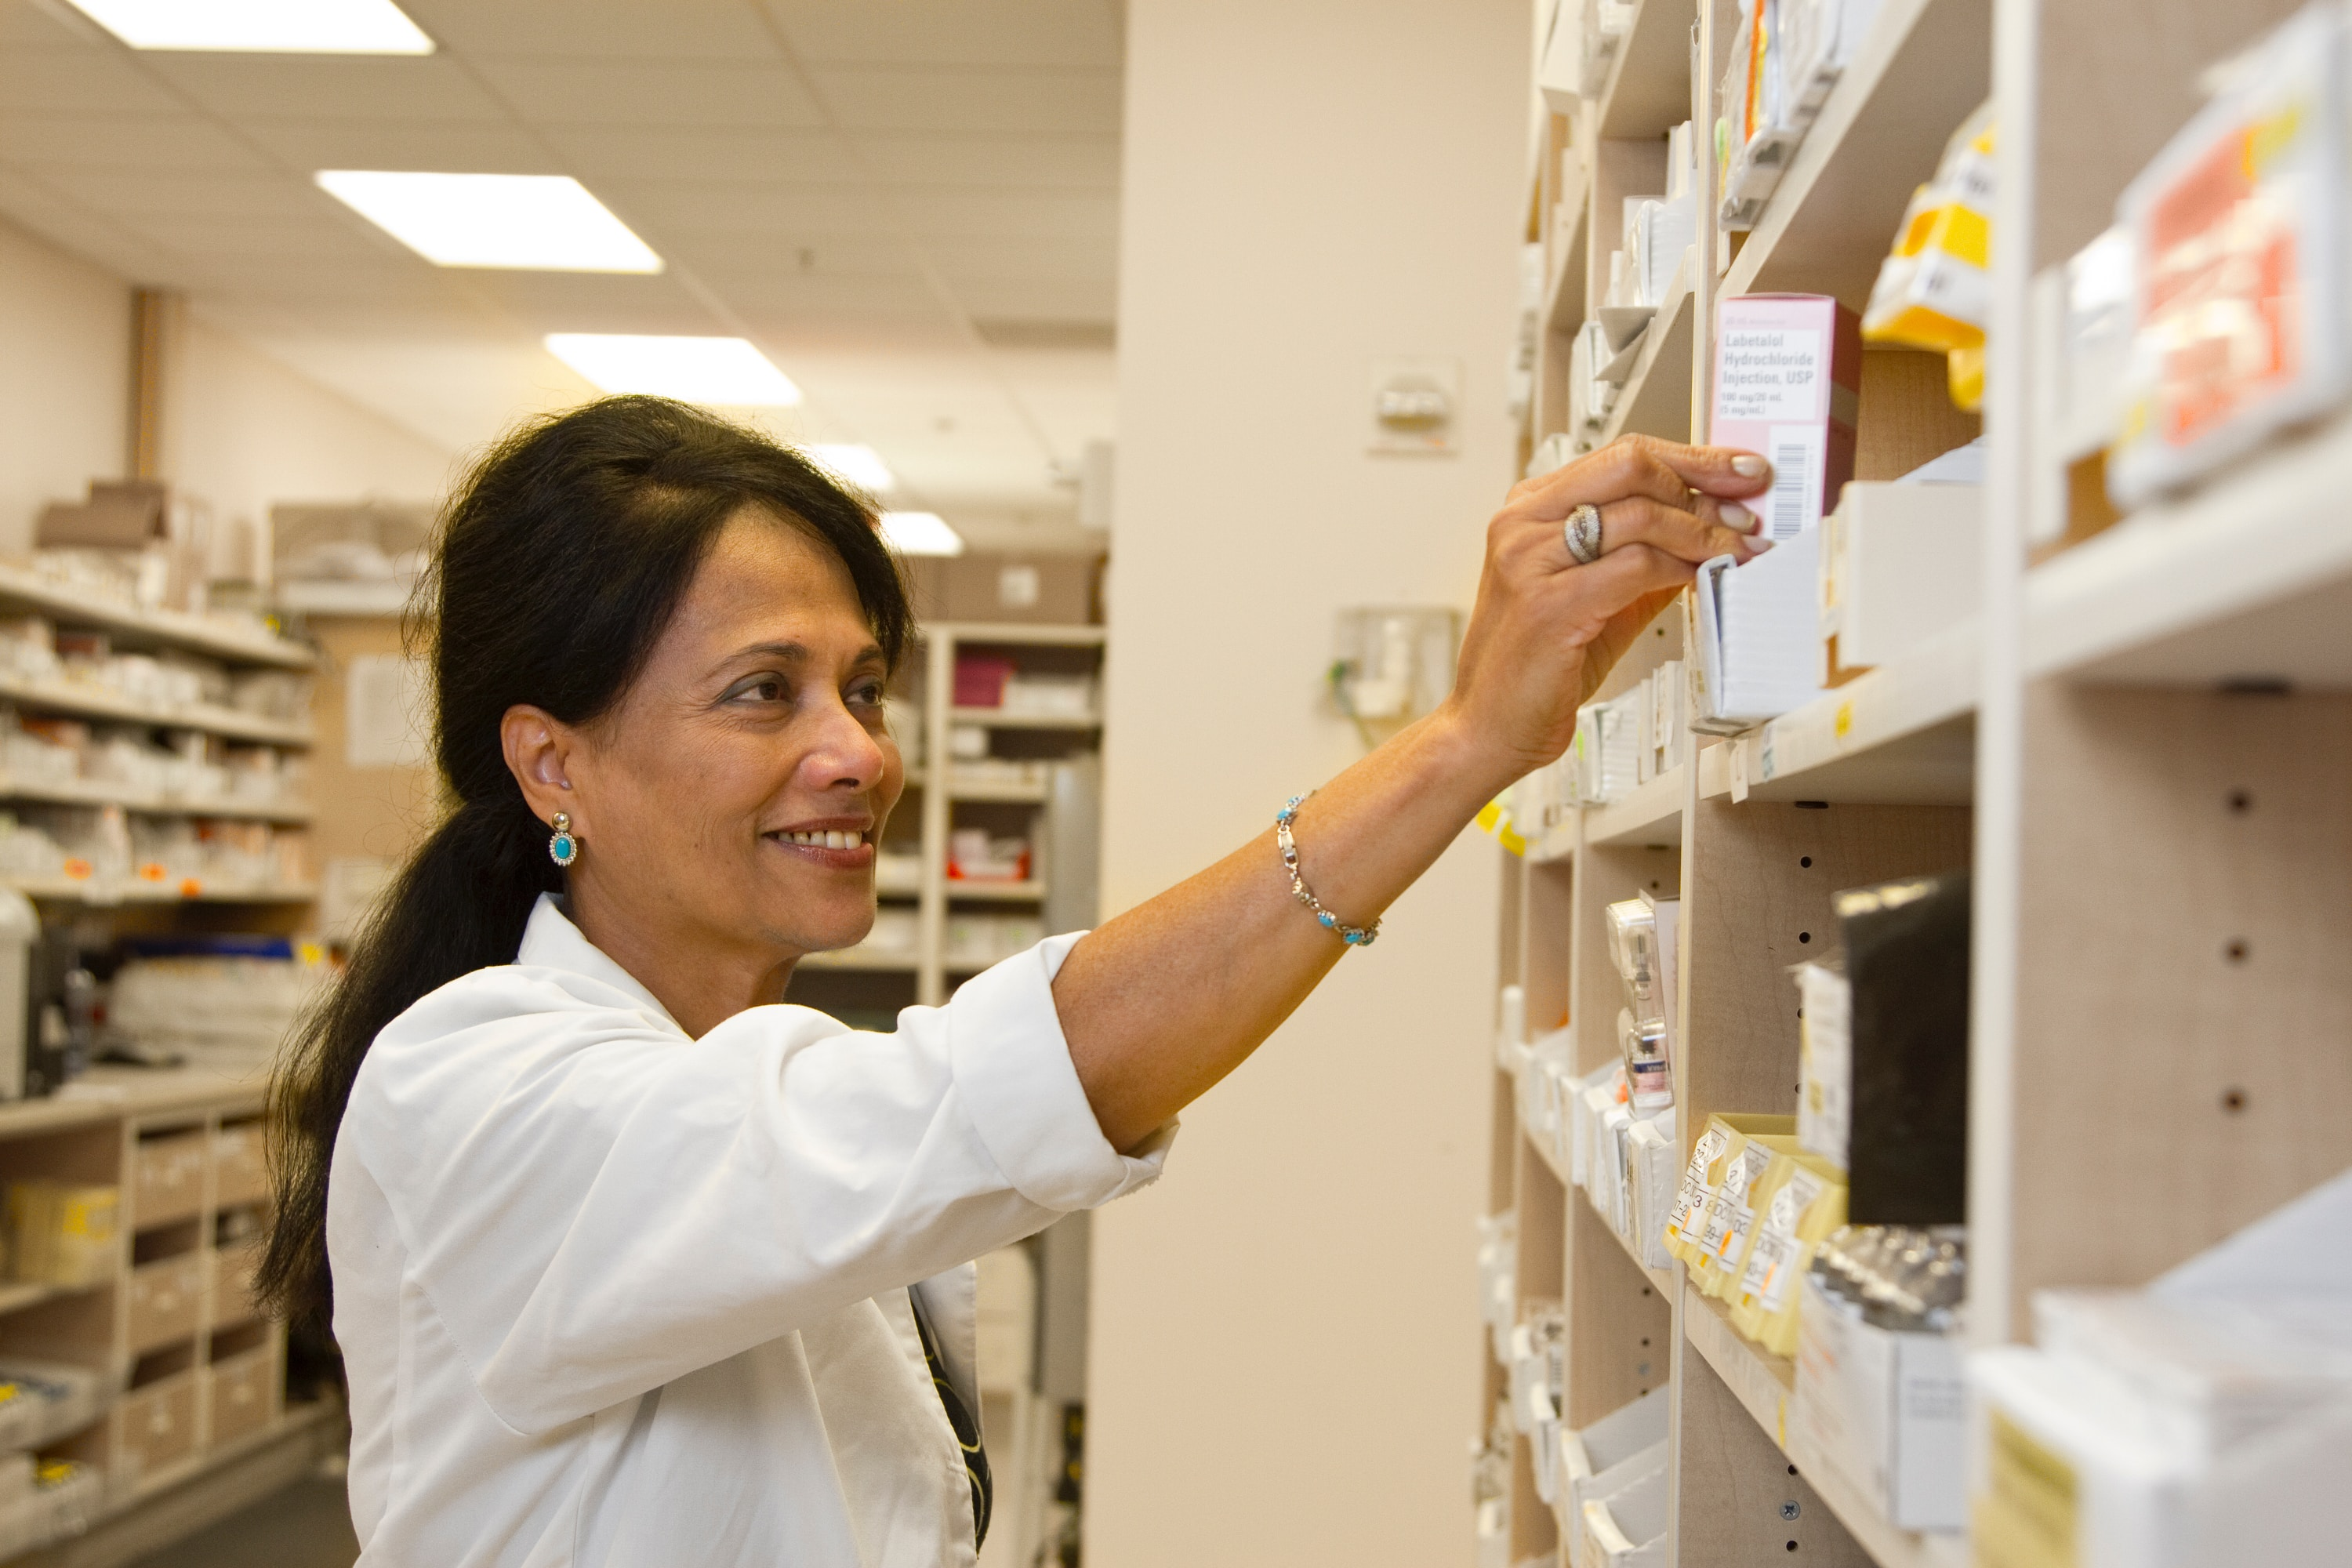 The growing role of pharmacists within patients pathway: what implications for pharmaceutical companies?